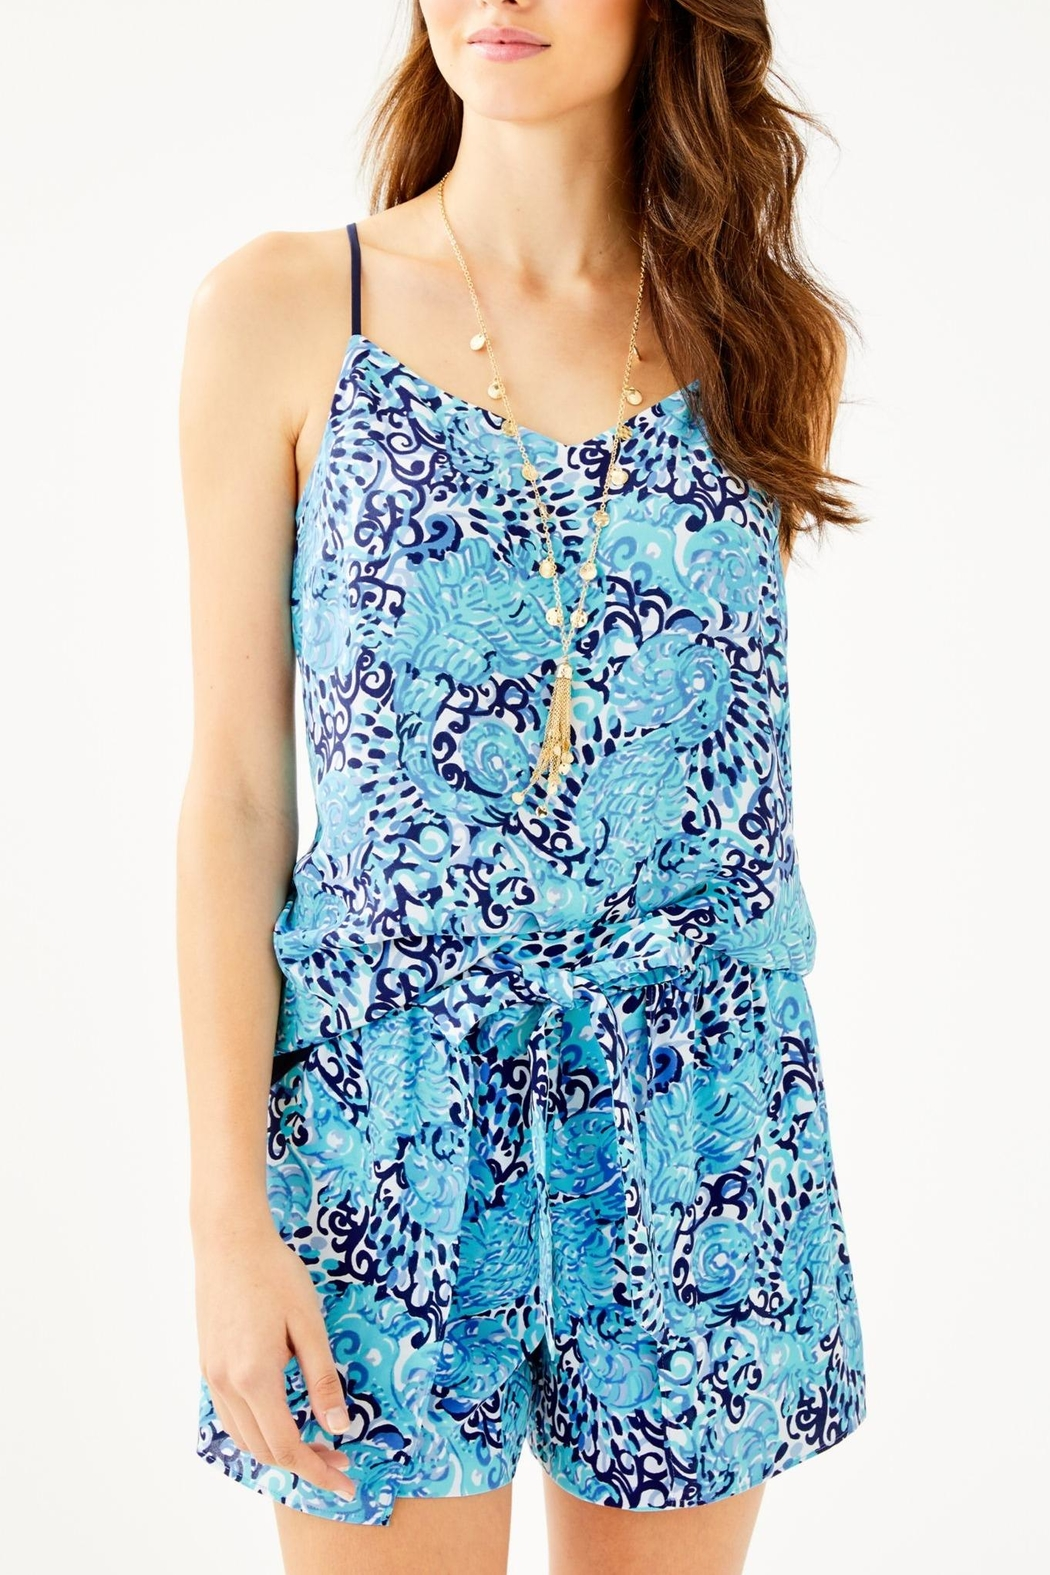 Lilly Pulitzer Dusk Reversible Top - Main Image